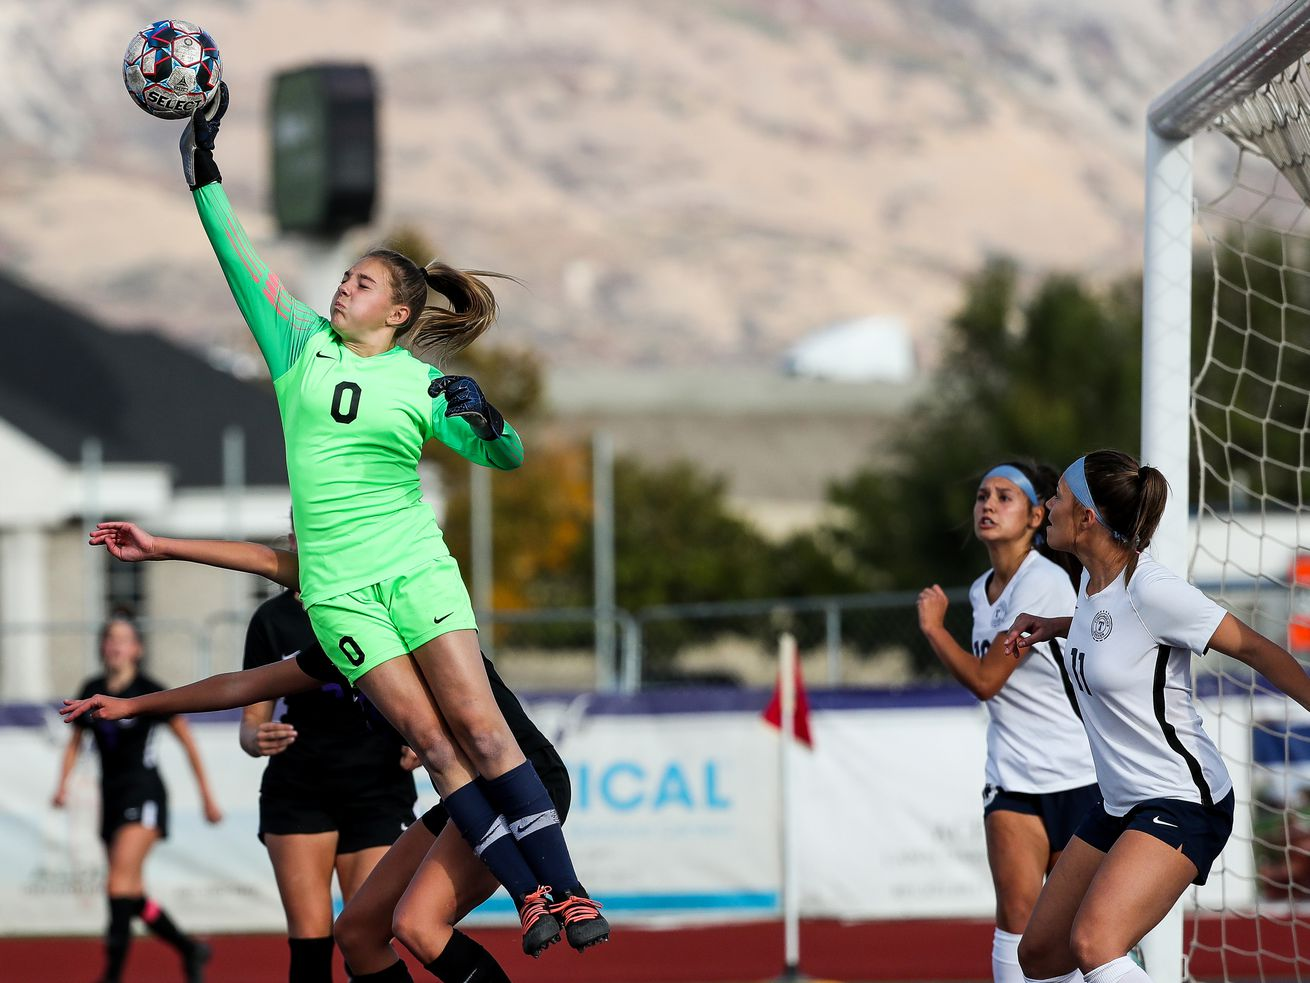 Timpanogos goalkeeper Emma McIff makes a save after a corner kick in a 5A girls soccer game against Lehi in Lehi on Tuesday, Oct. 13, 2020.